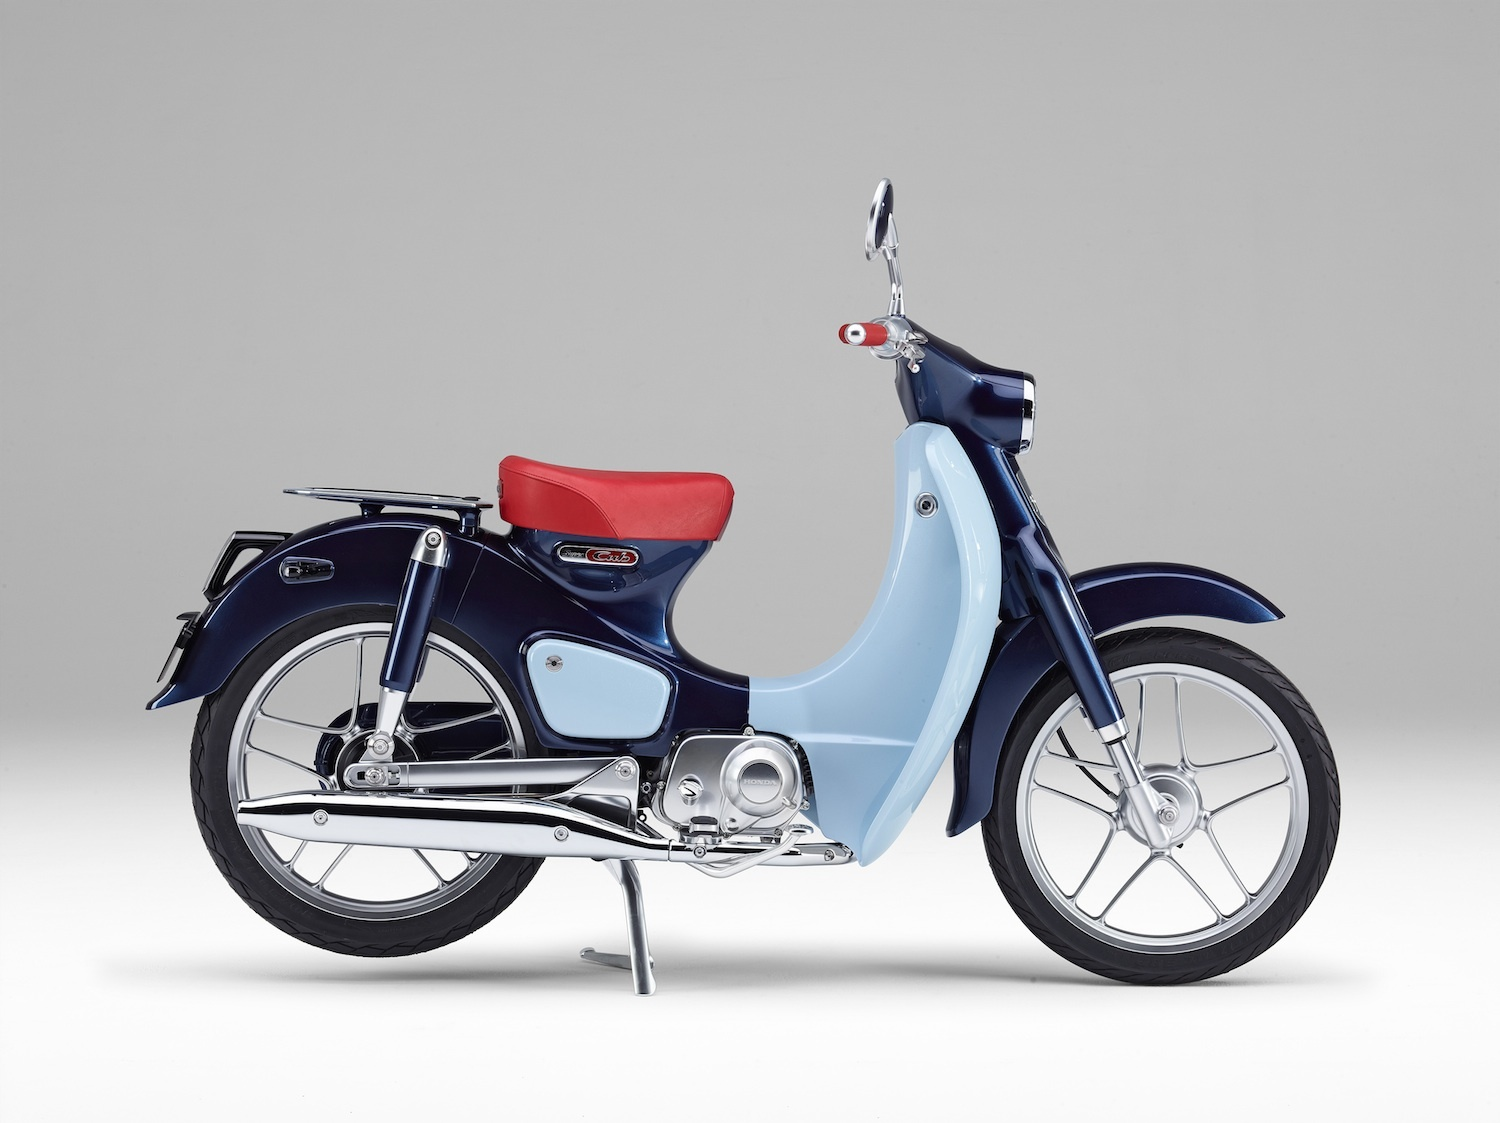 2019 Honda Super Cub 125 Concept Scooter / Motorcycle